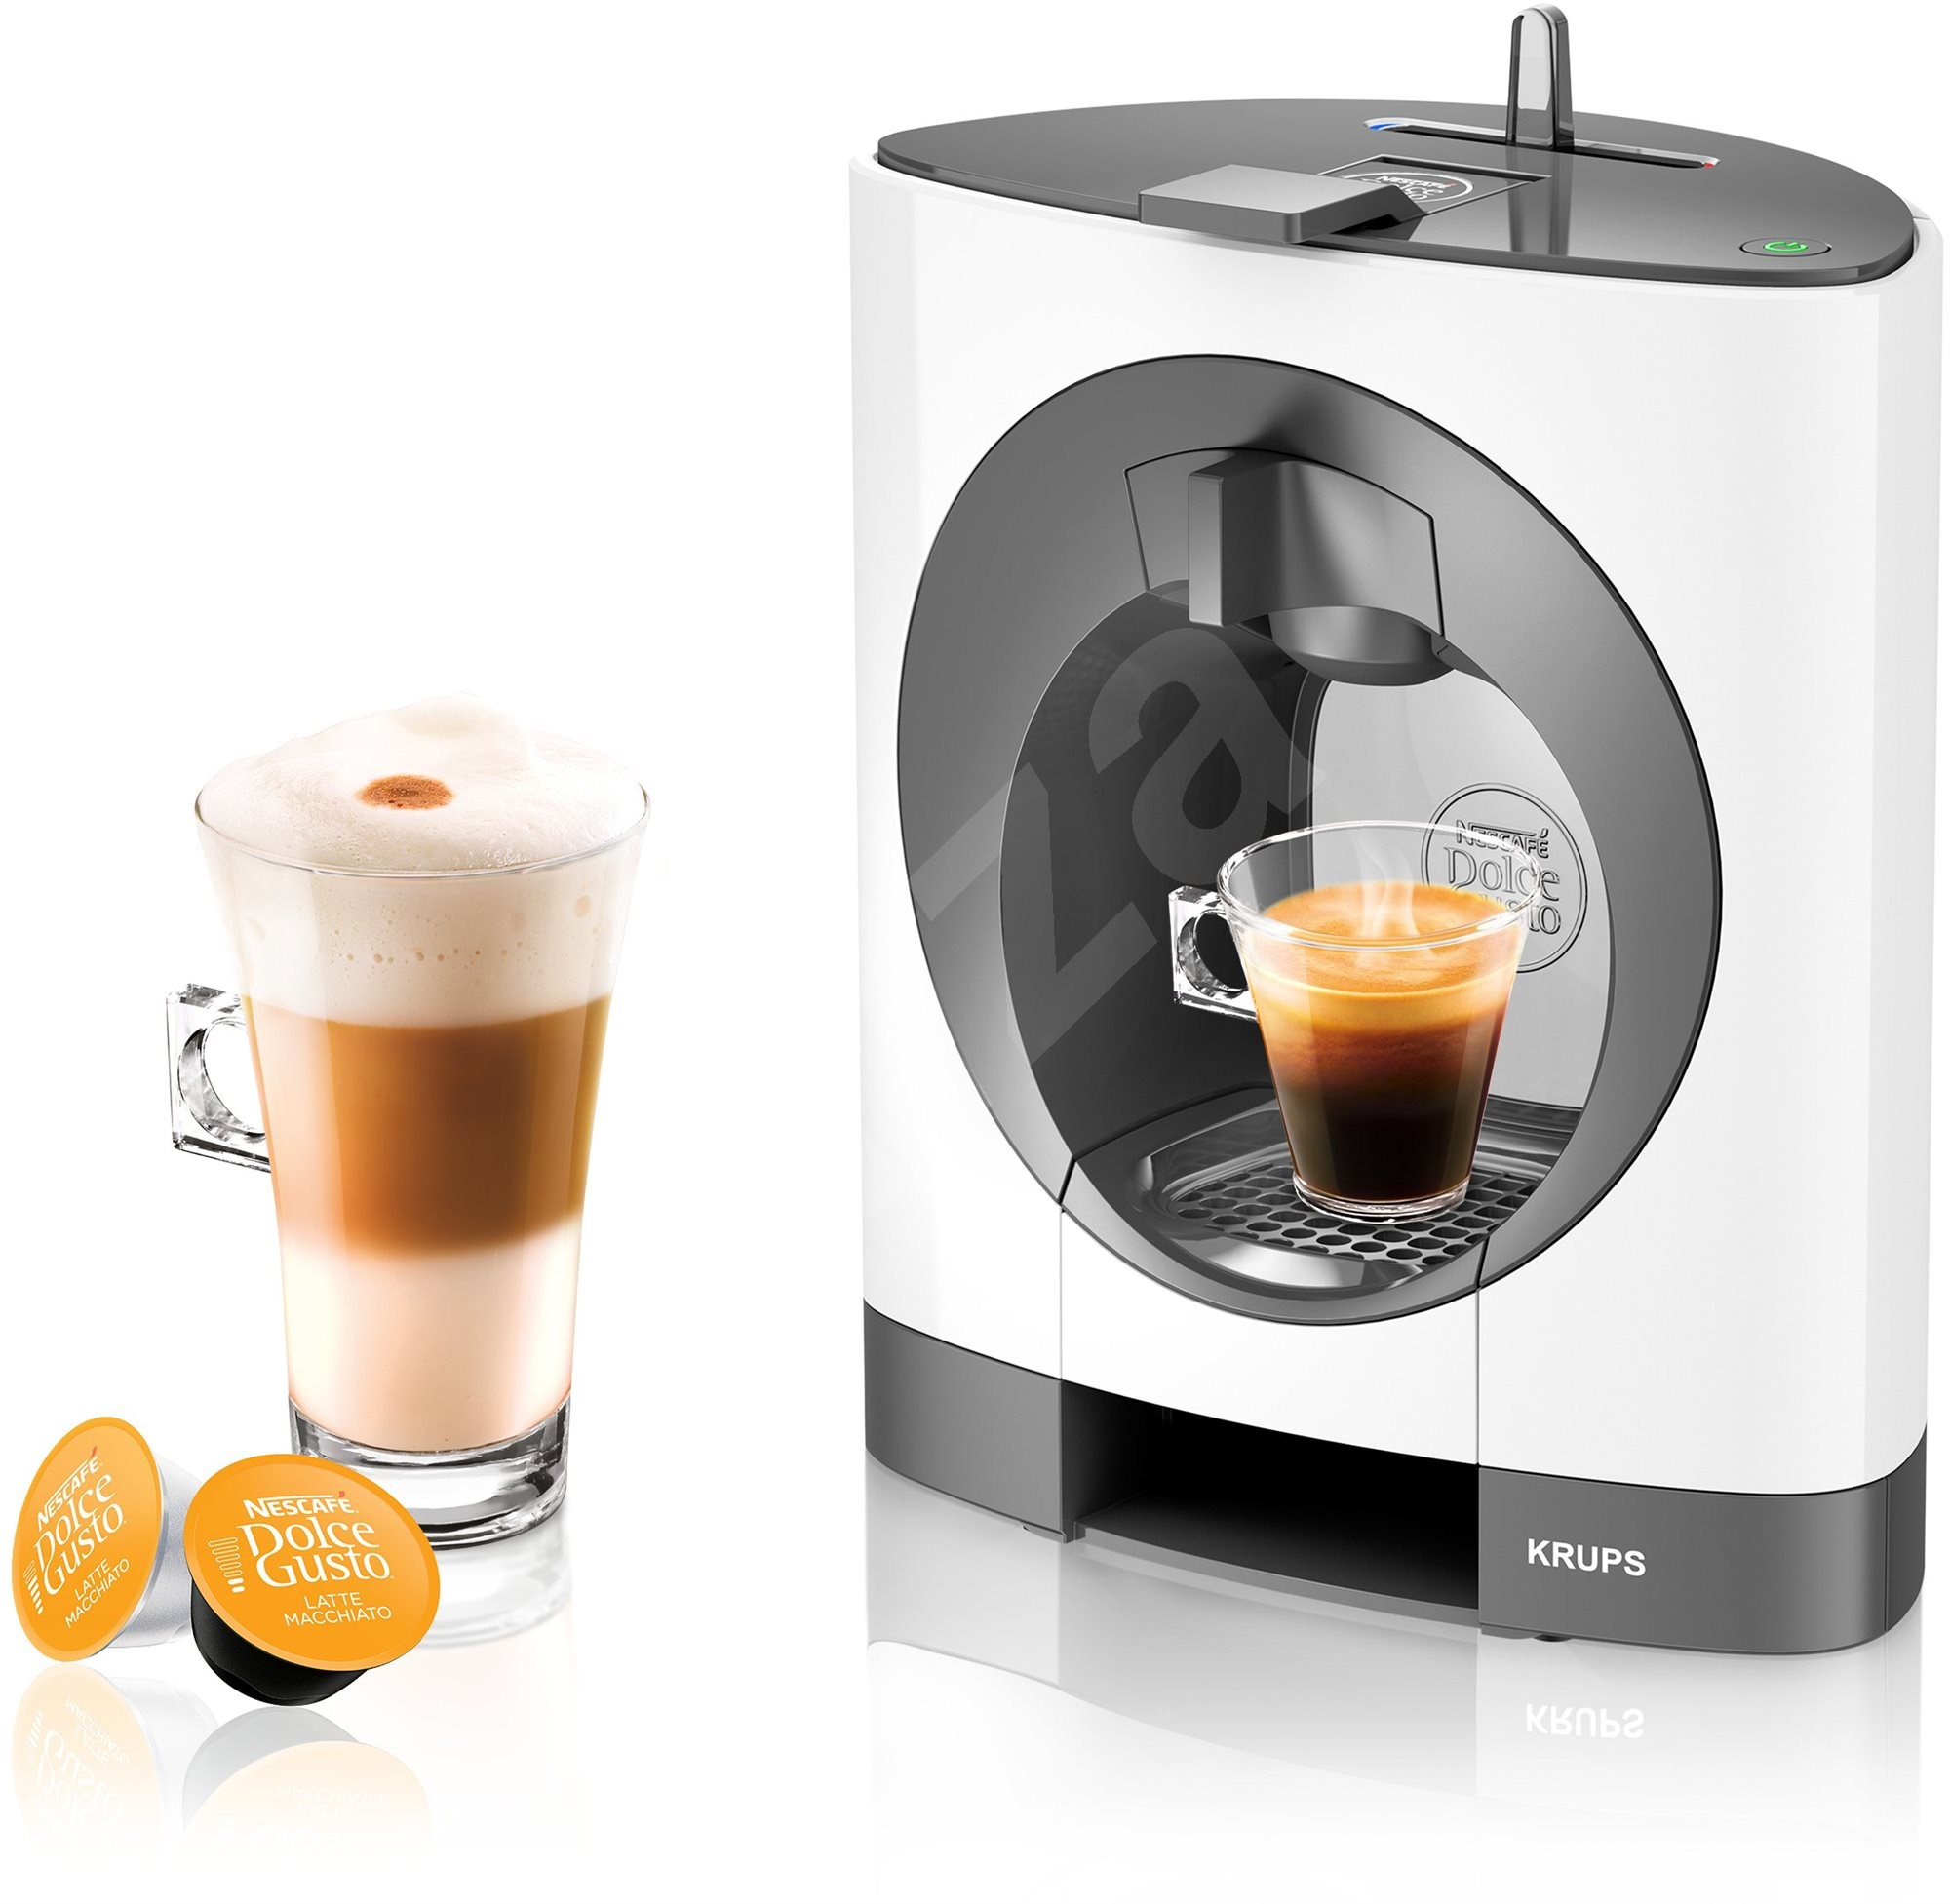 krups kp110131 nescaf dolce gusto oblo capsule coffee machine. Black Bedroom Furniture Sets. Home Design Ideas